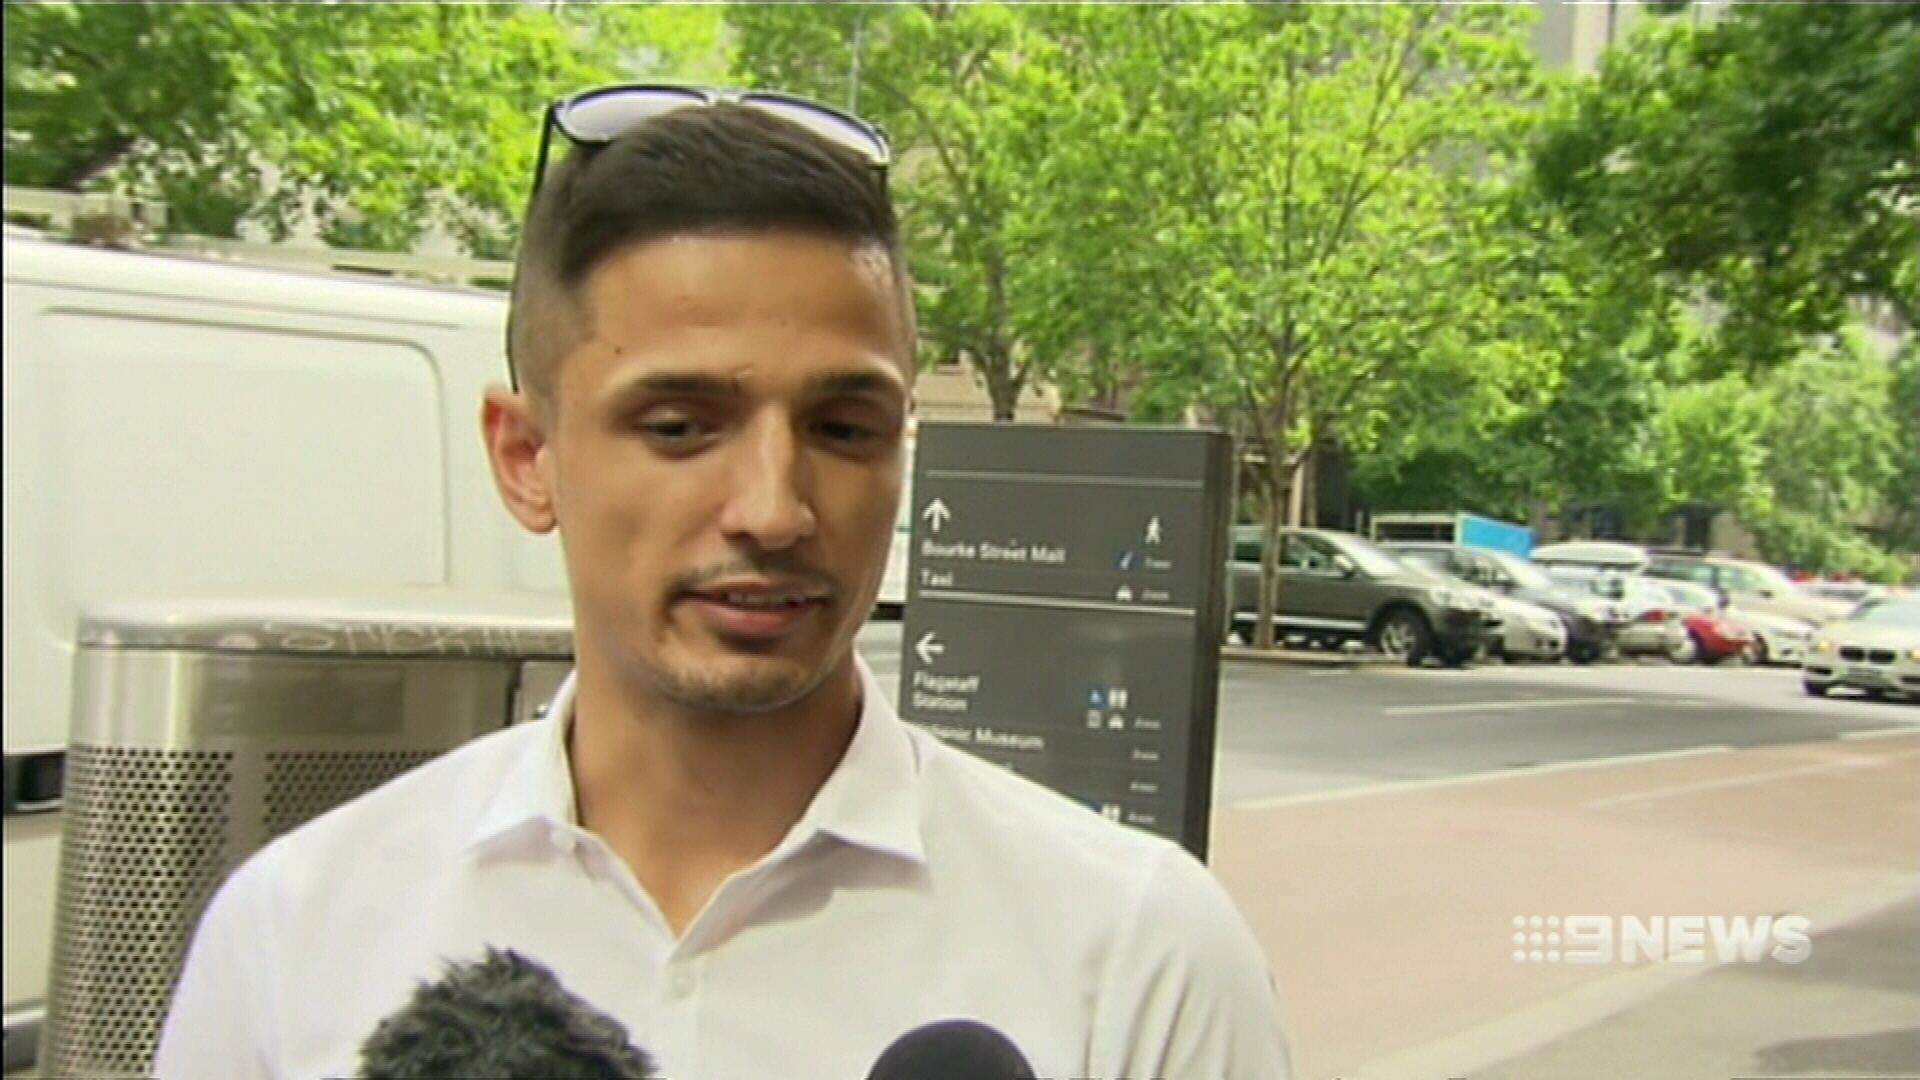 Brother of Bourke Street killer concerned about his sibling's mental health